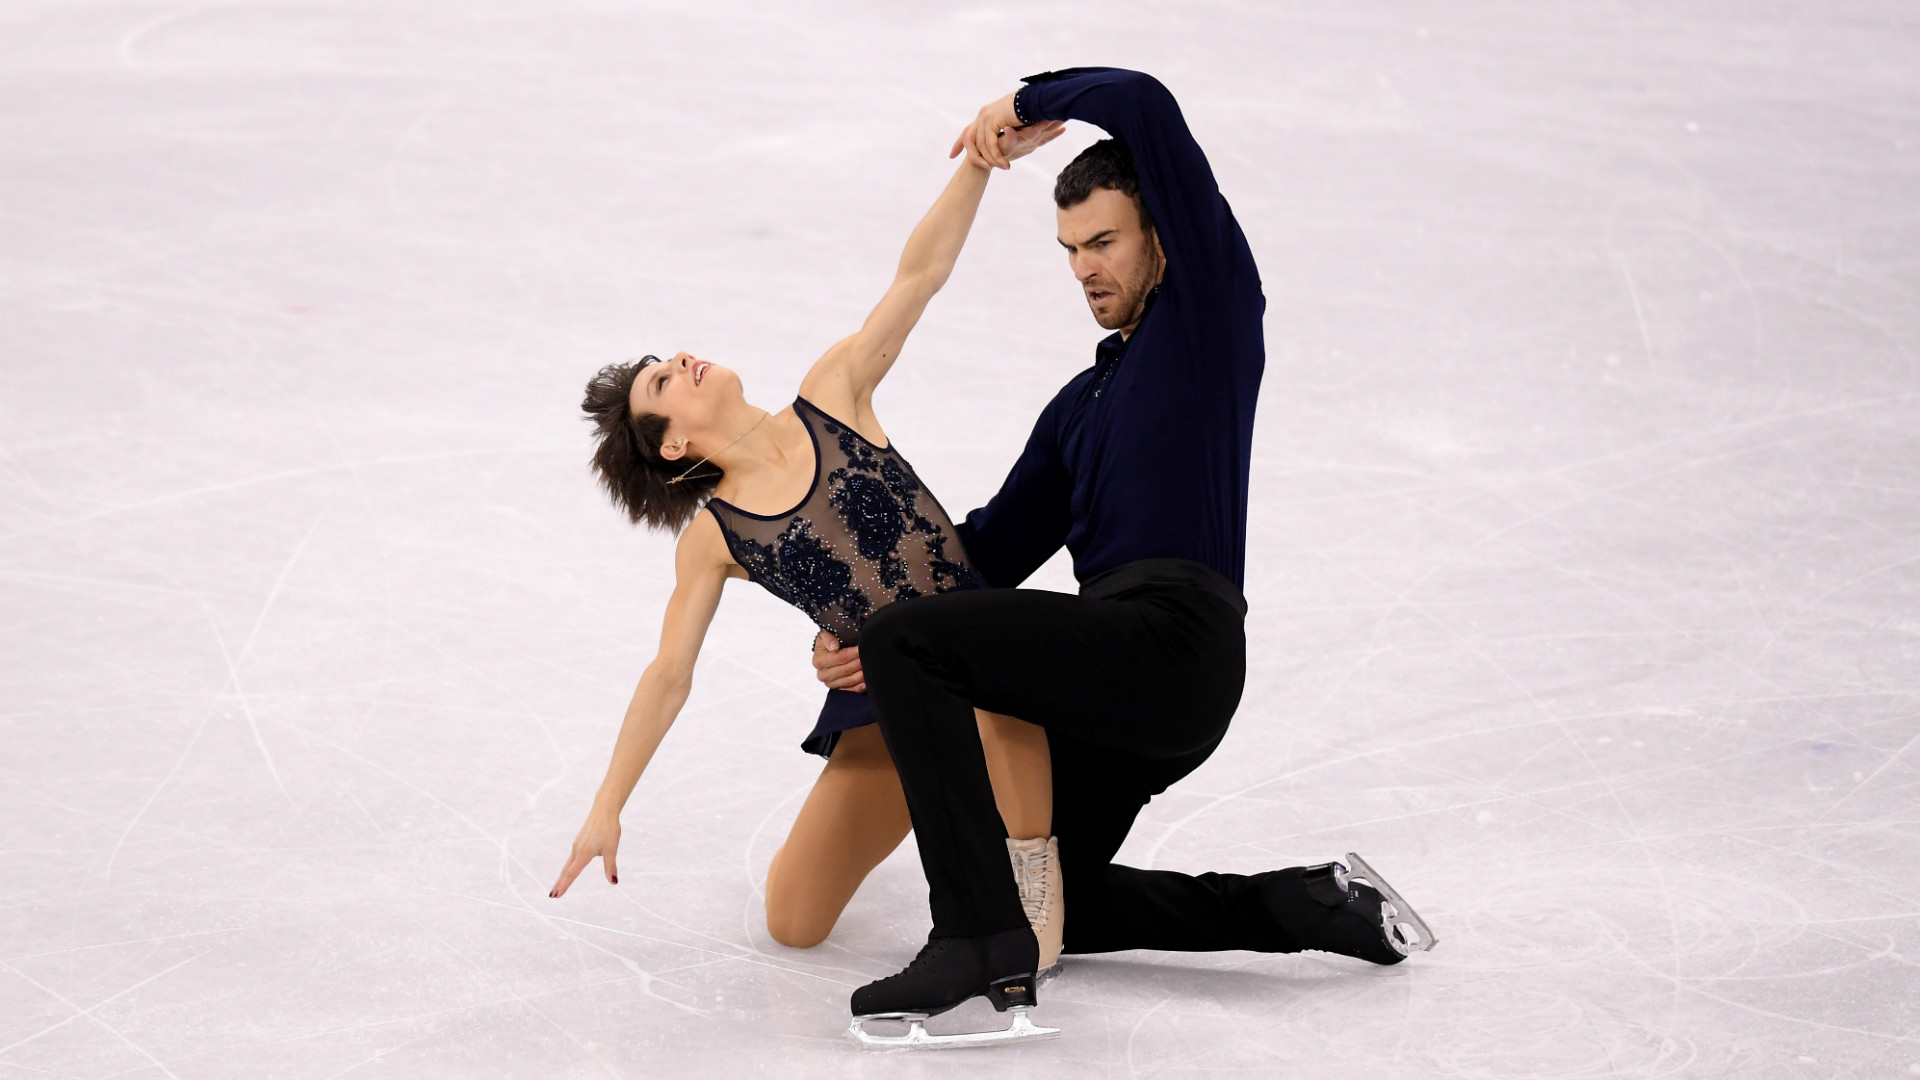 Out athlete Eric Radford takes home gold in Winter Olympics first